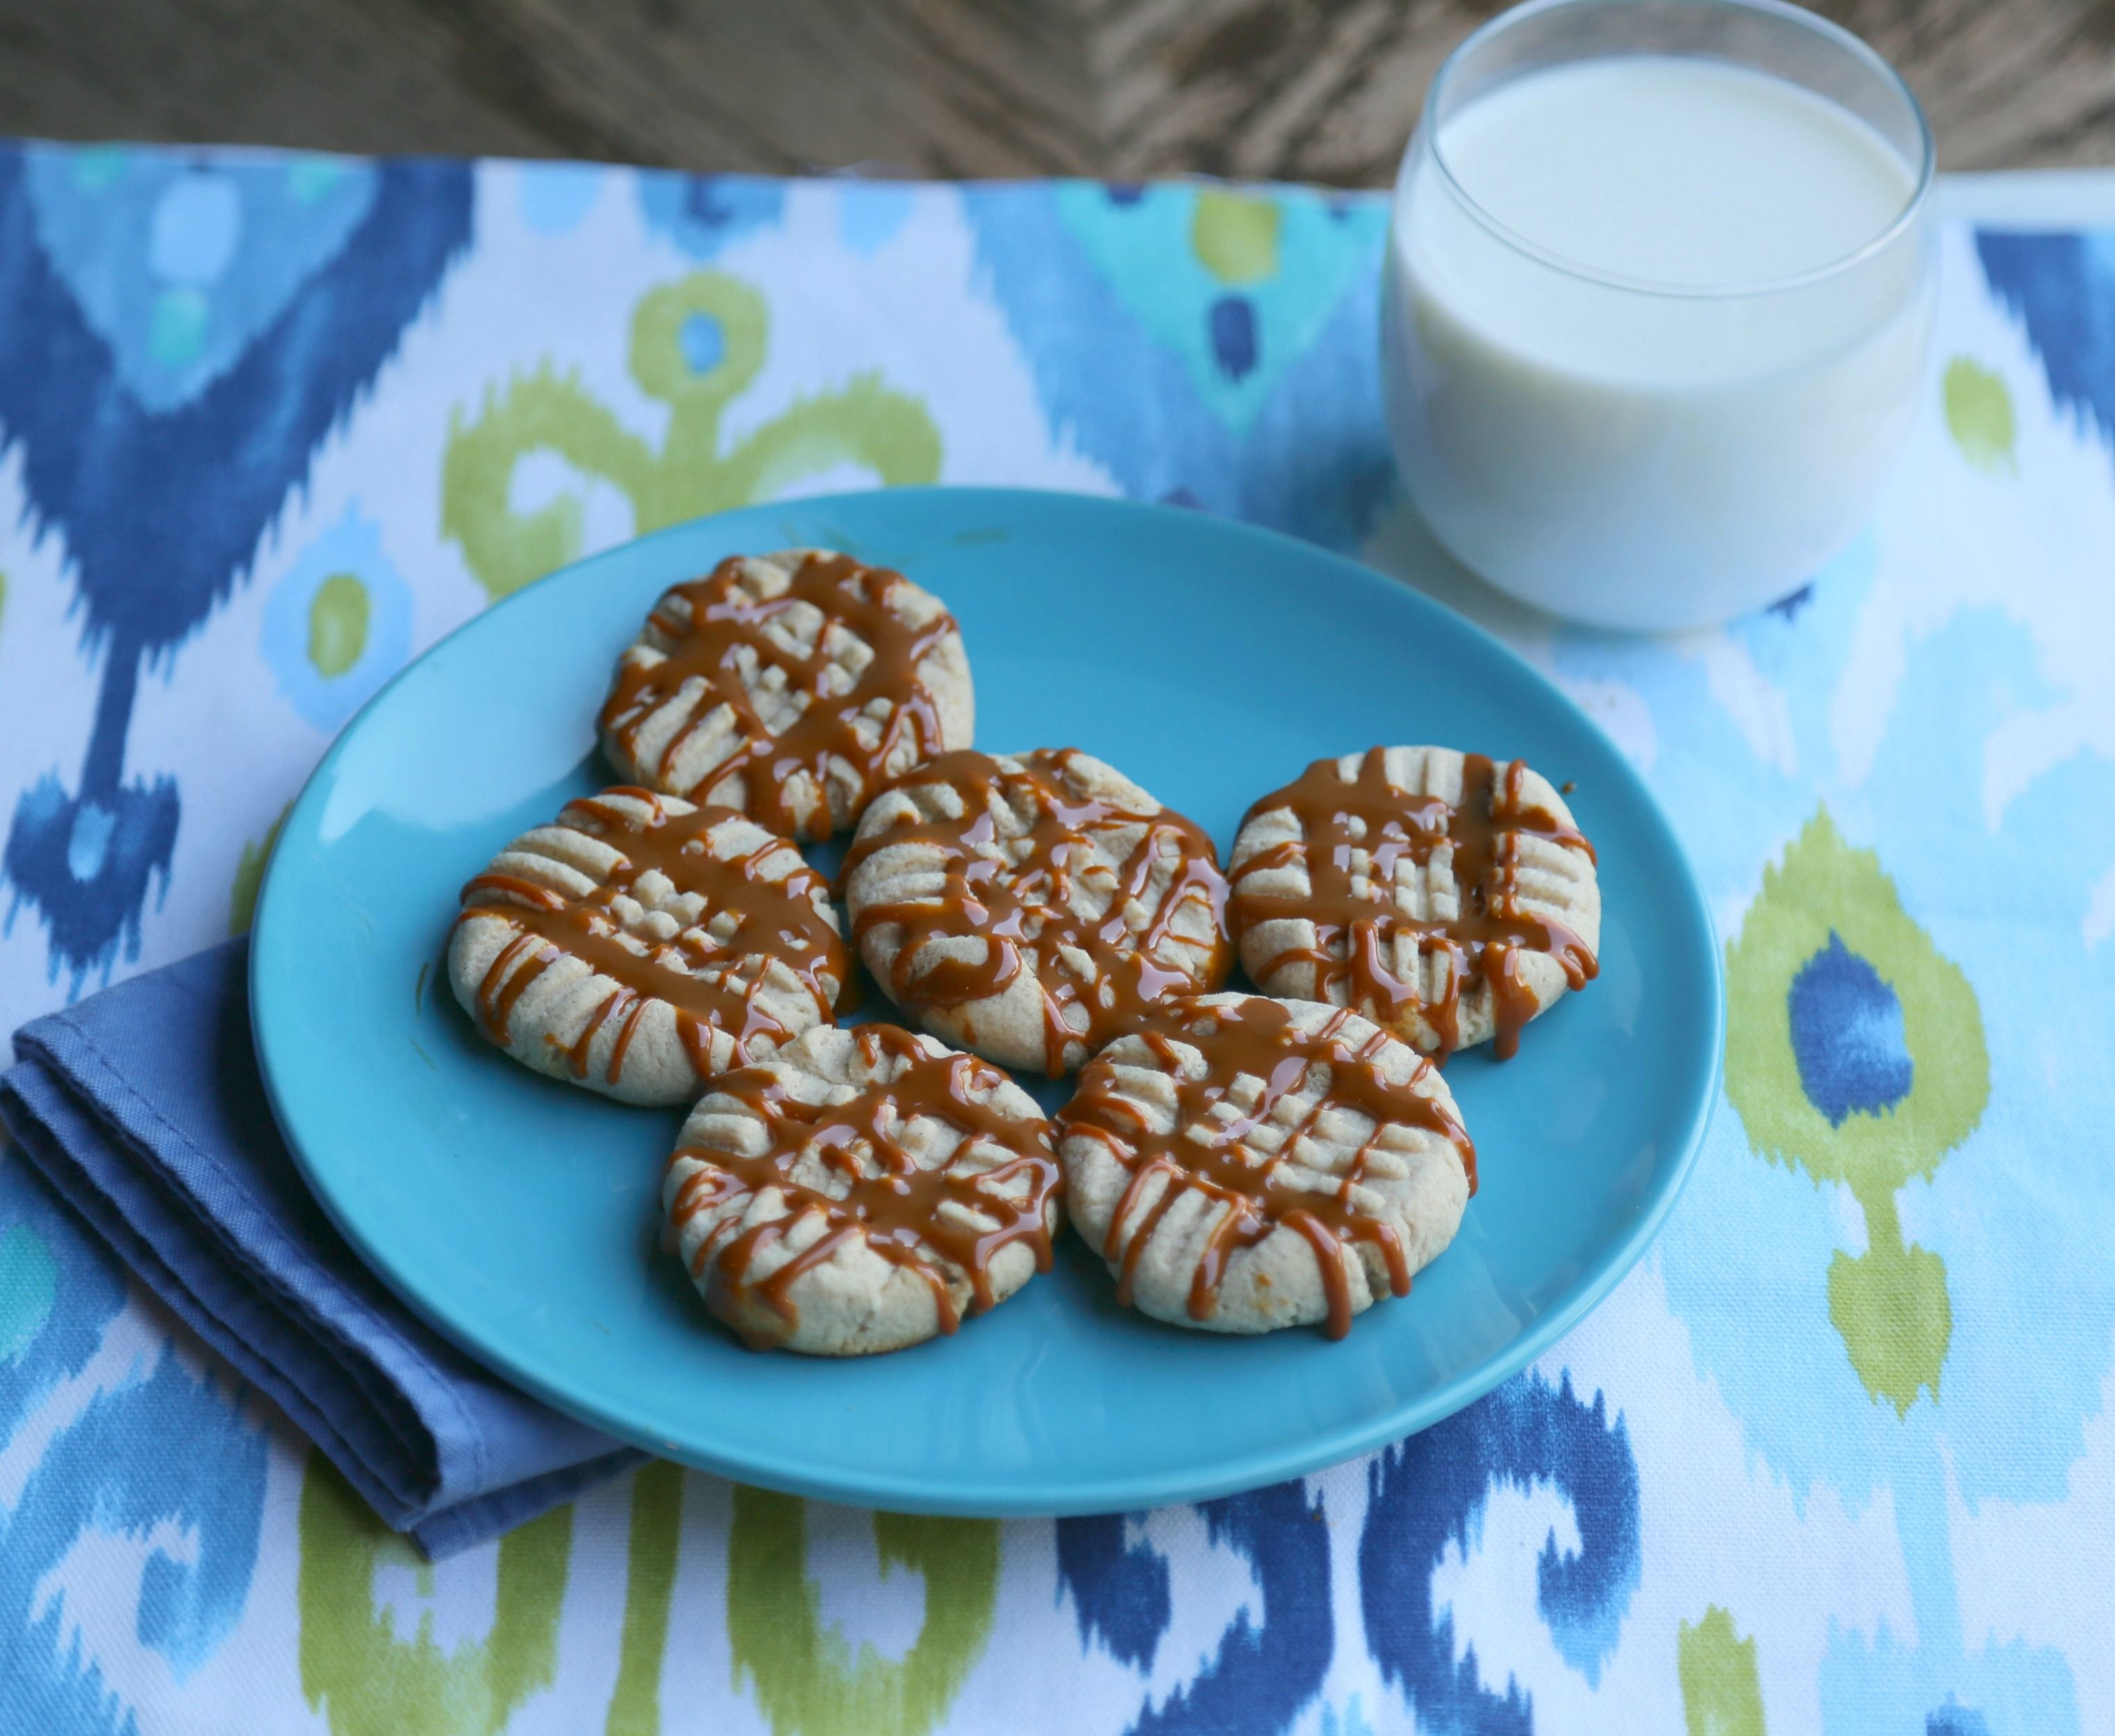 Photo of Celebrating Las Posadas with Atole Cookies